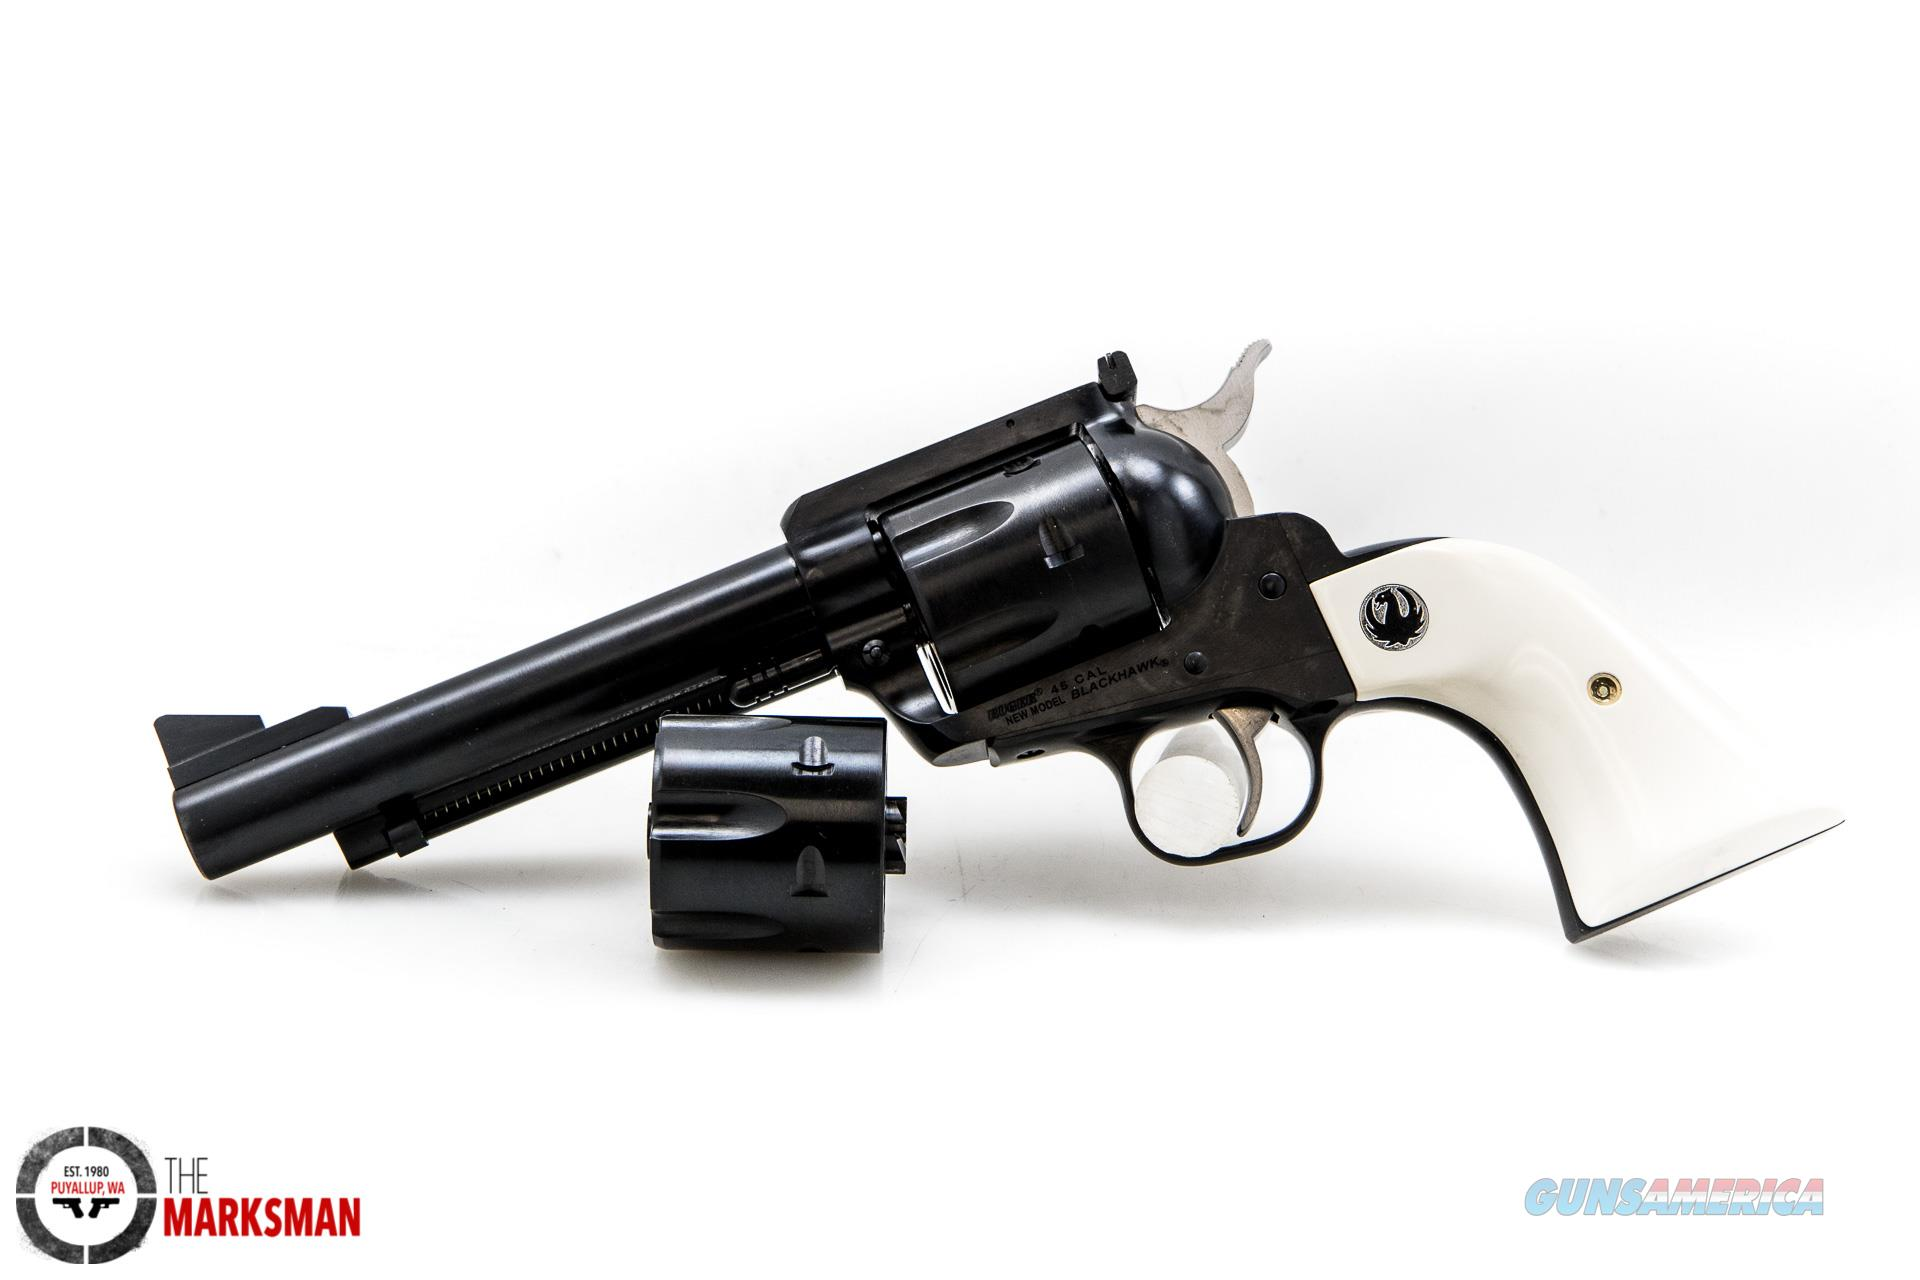 Ruger Convertible Blackhawk, .45 Colt/.45 ACP, Imitation Ivory Grips  Guns > Pistols > Ruger Single Action Revolvers > Blackhawk Type